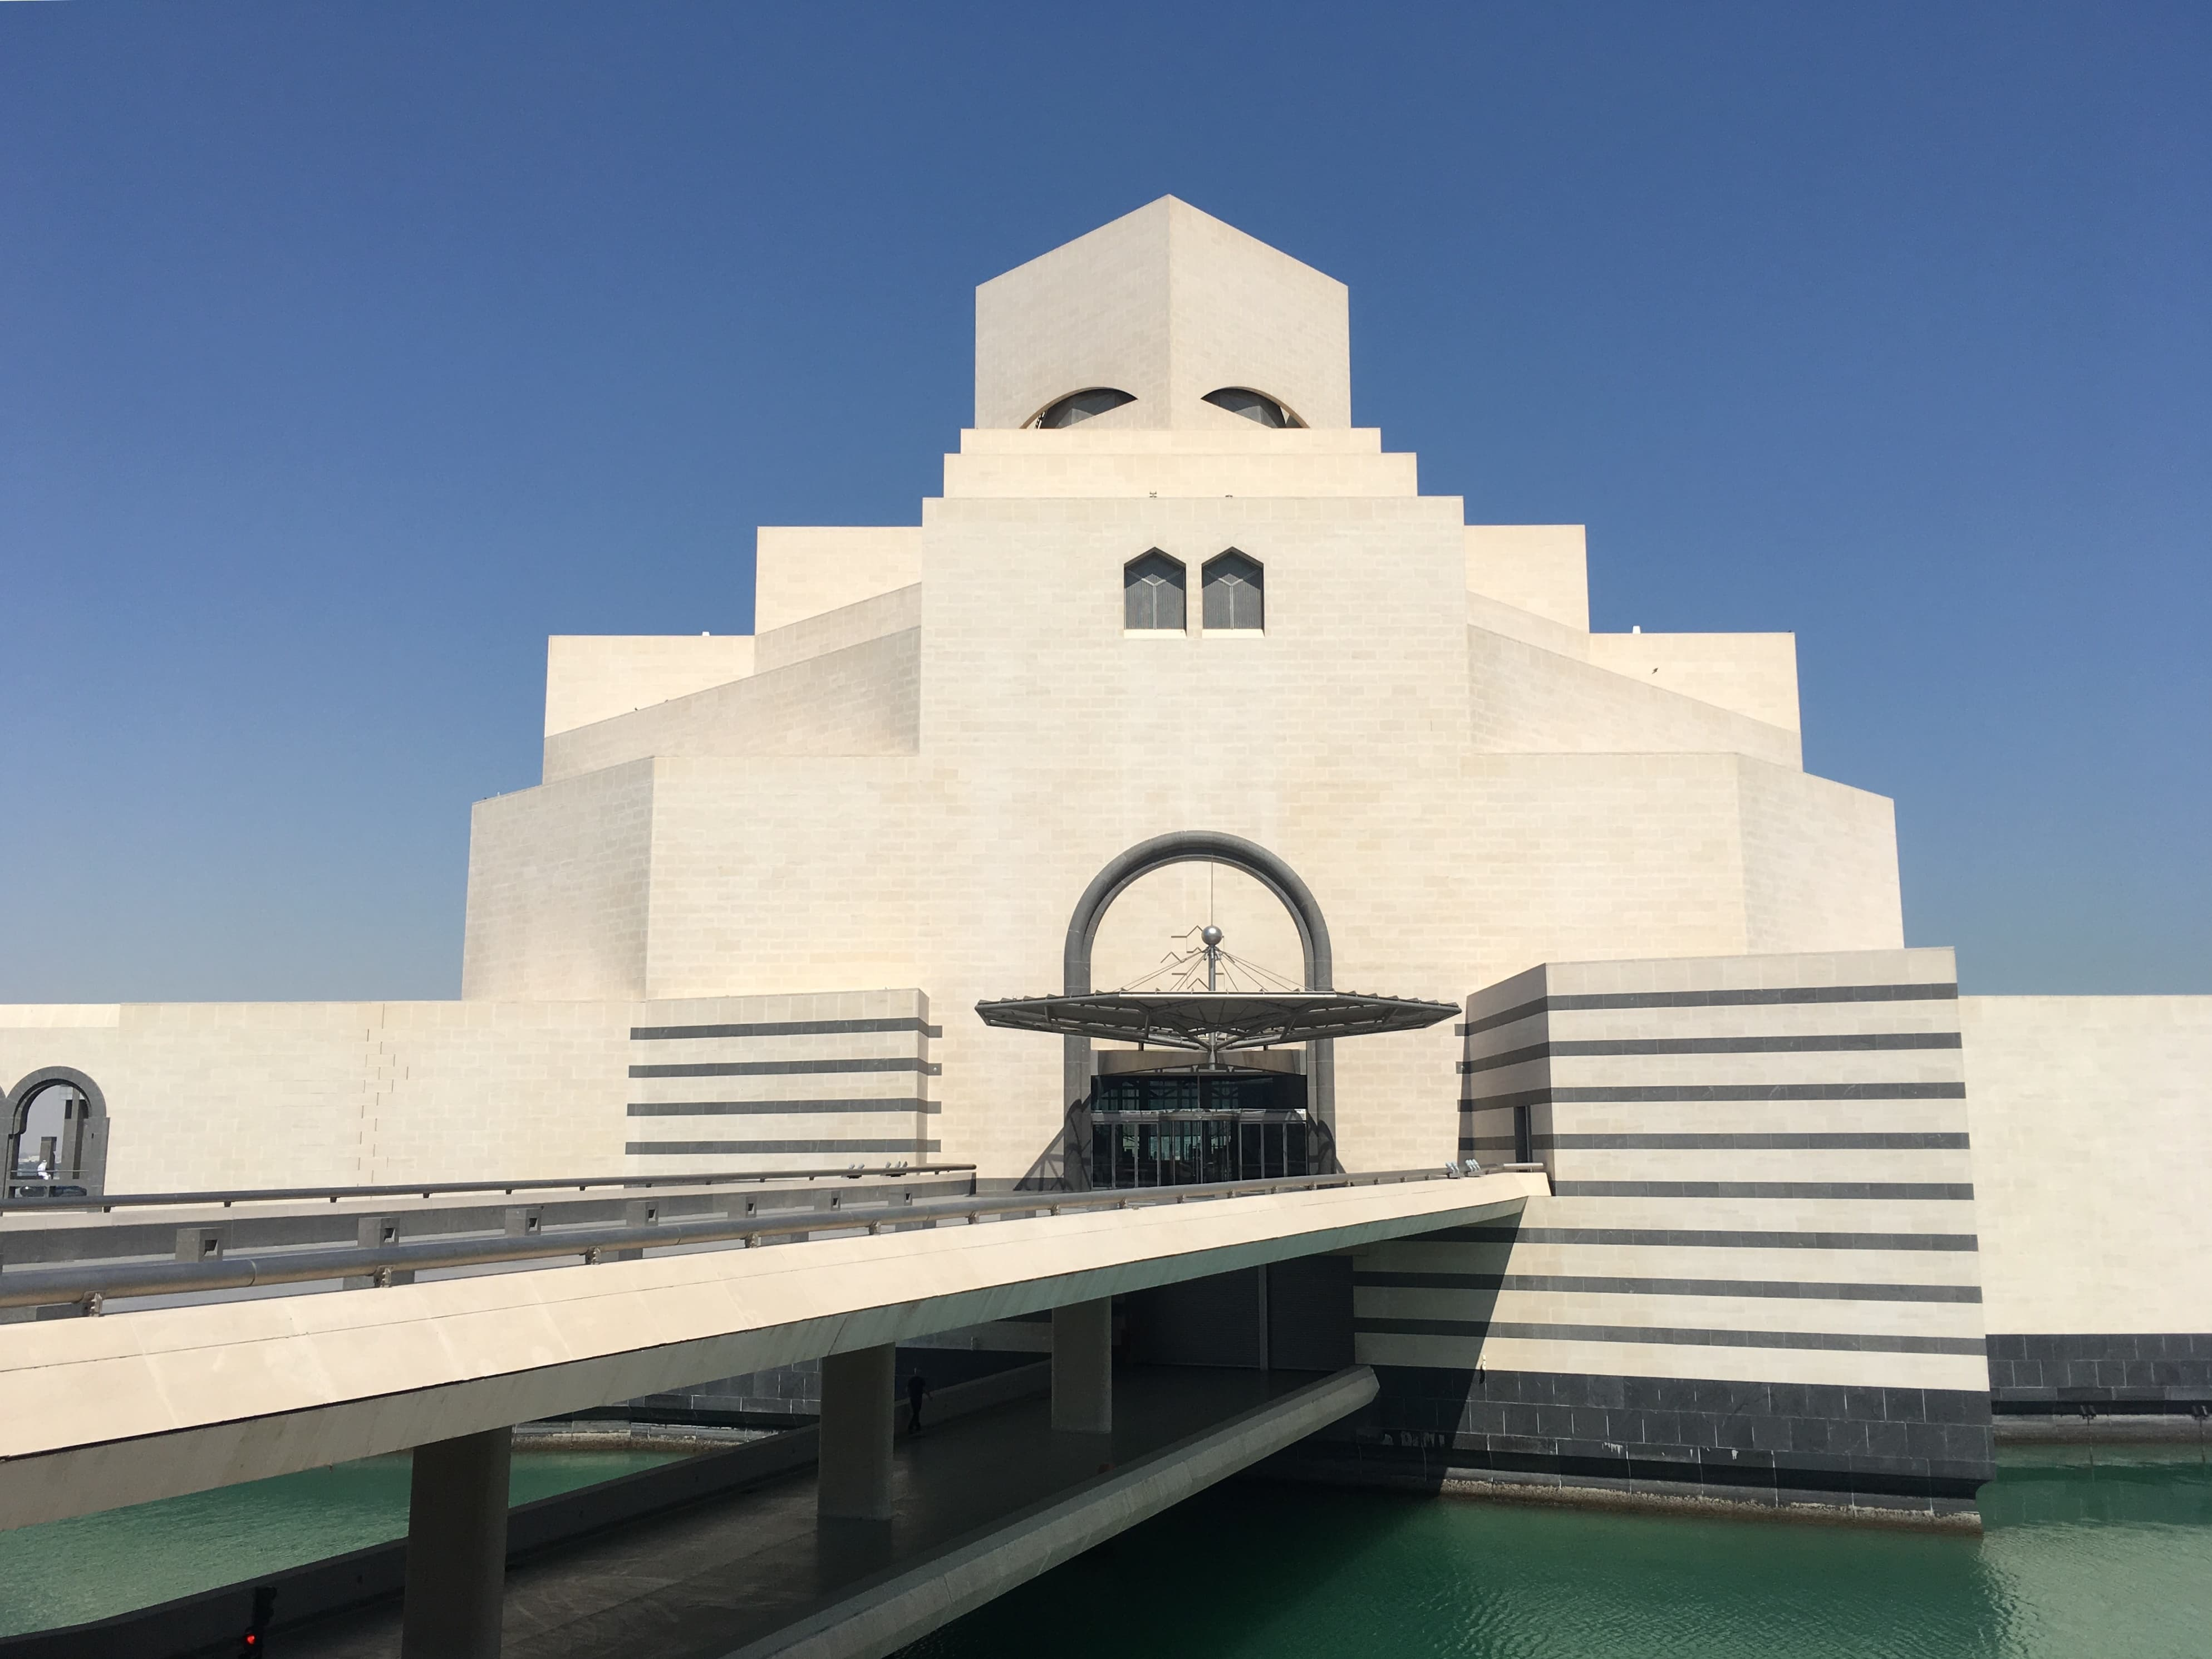 The Museum of Islamic Art, designed by Chinese-American architect I.M. Pei.